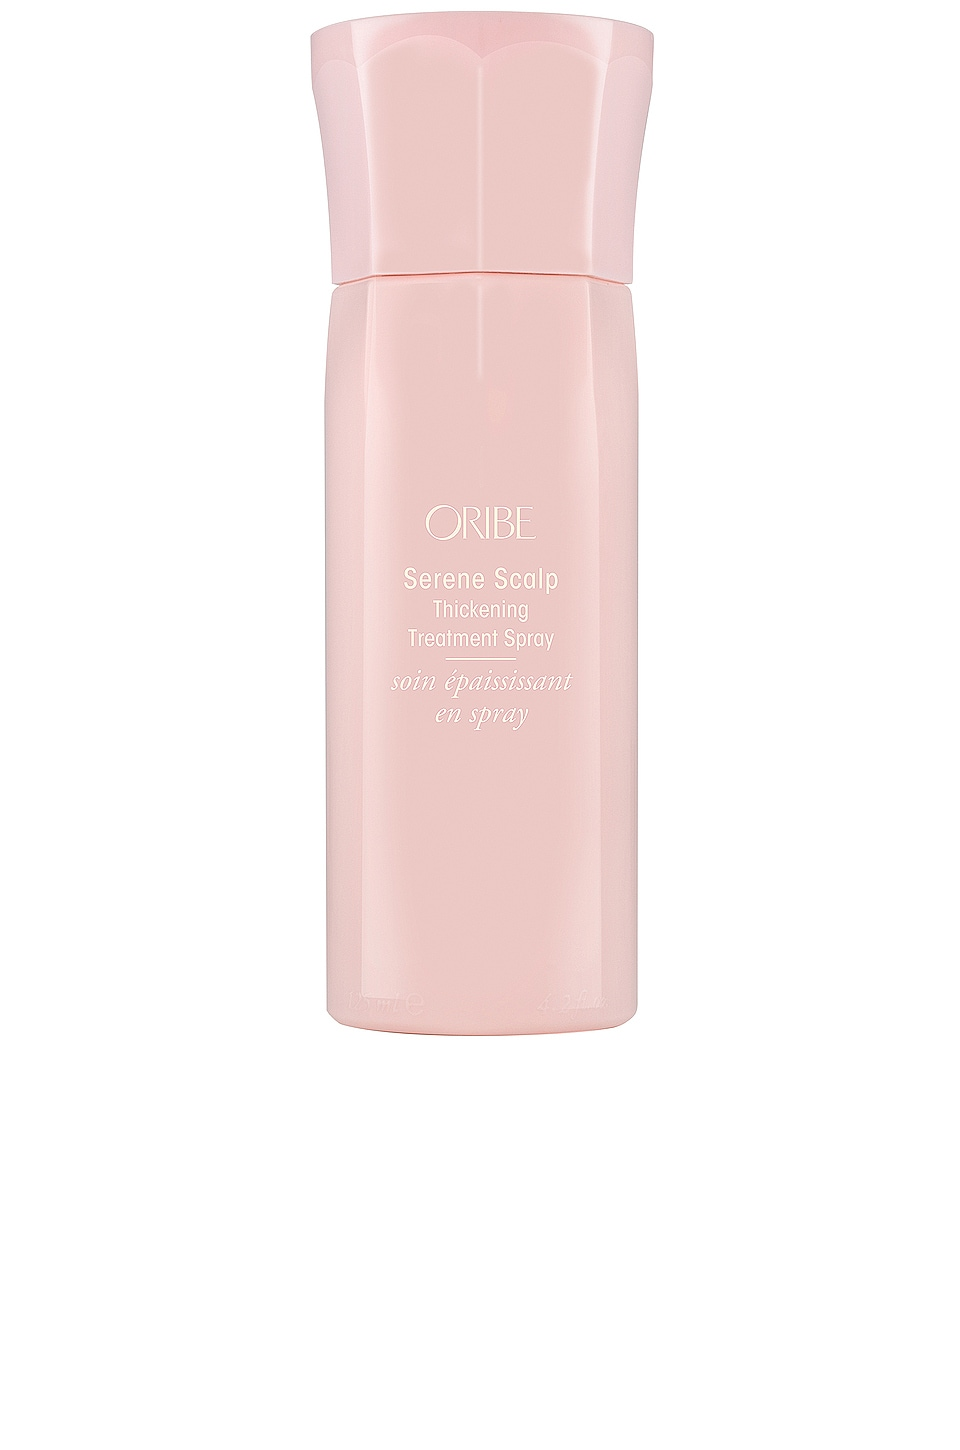 Oribe Serene Scalp Thickening Treatment Spray